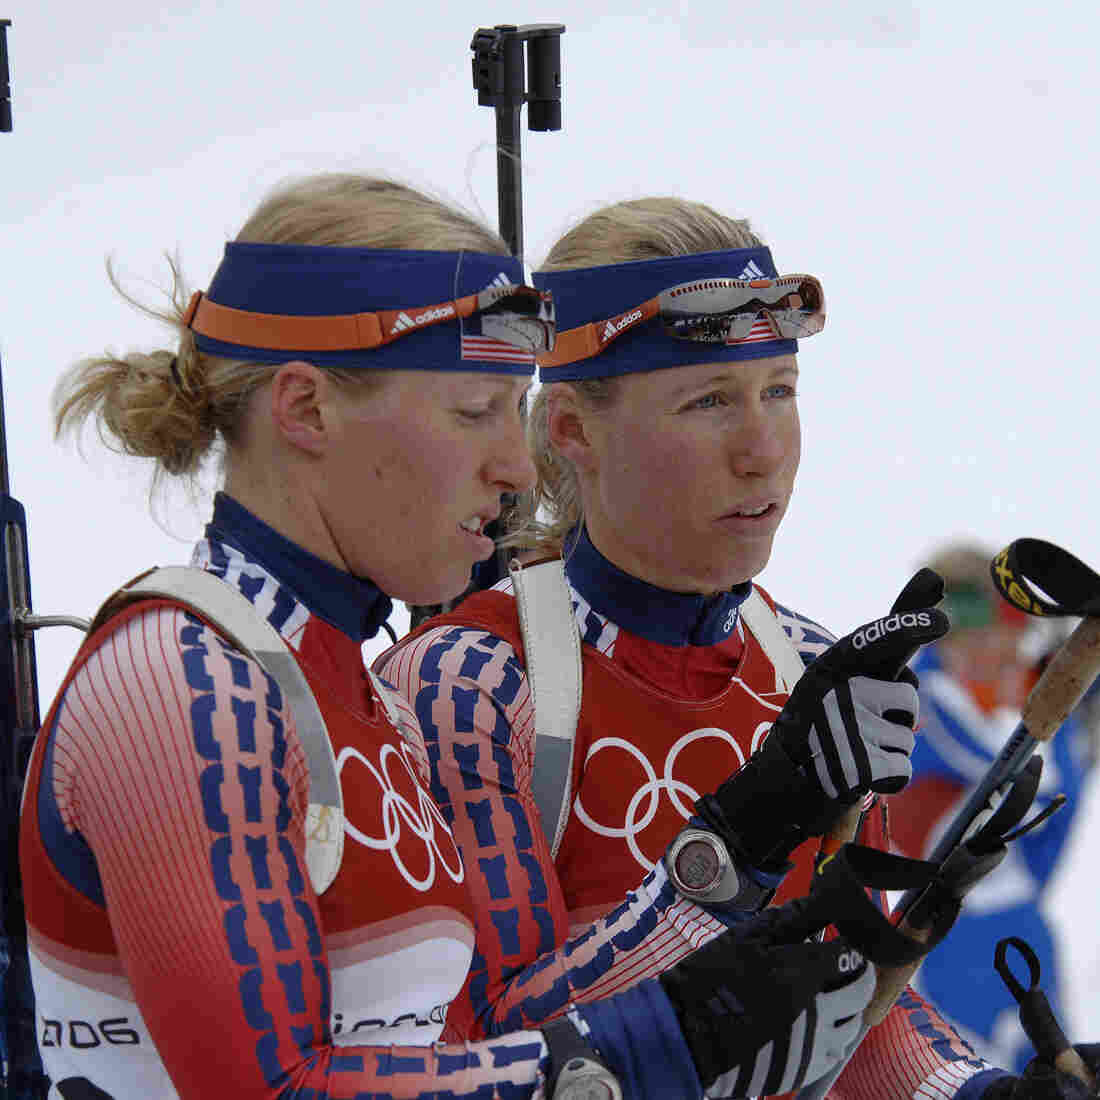 U.S. Biathlete Gives Up Olympic Spot To Her Twin Sister